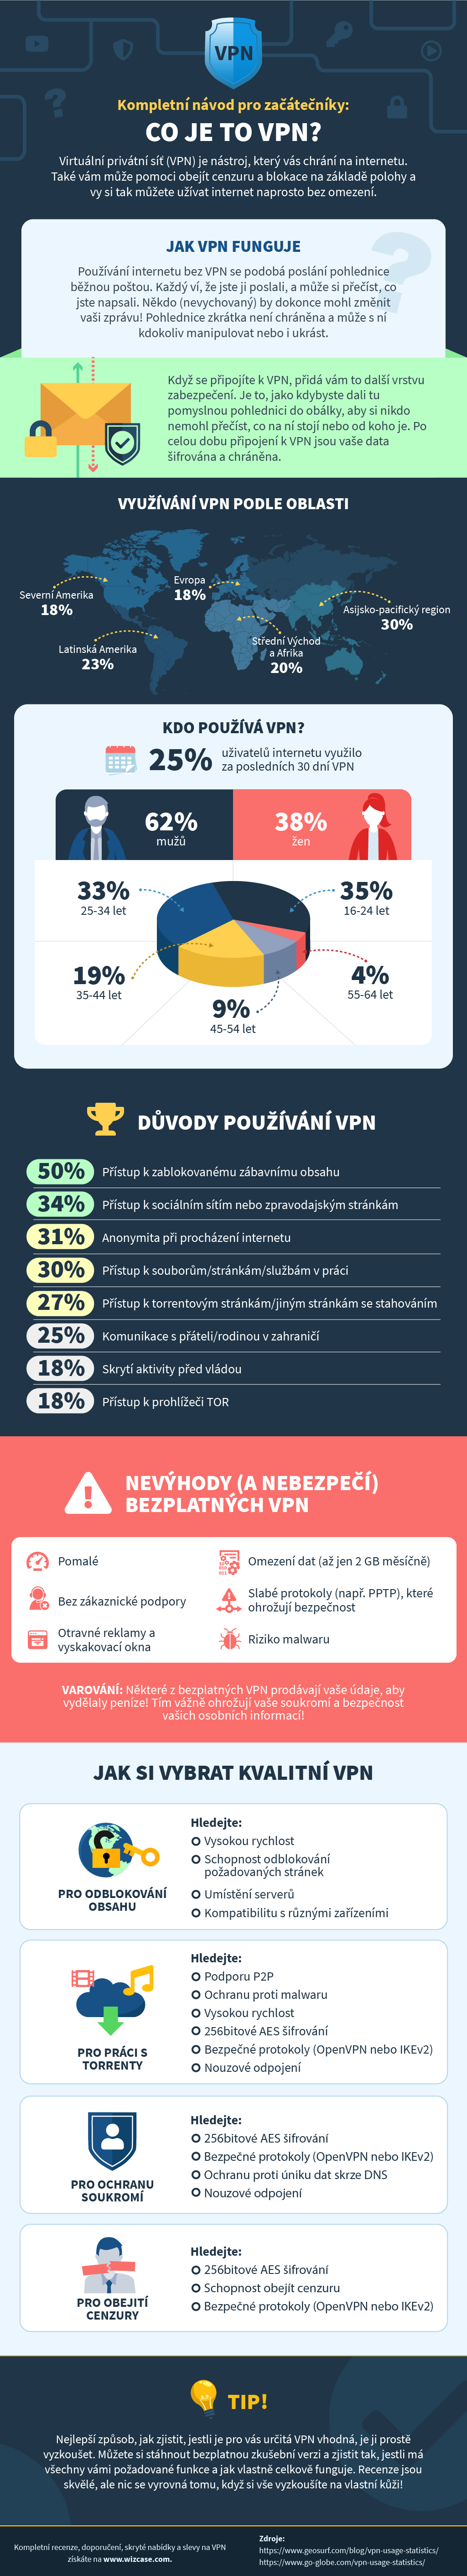 infographic guide to what is a VPN in Czech